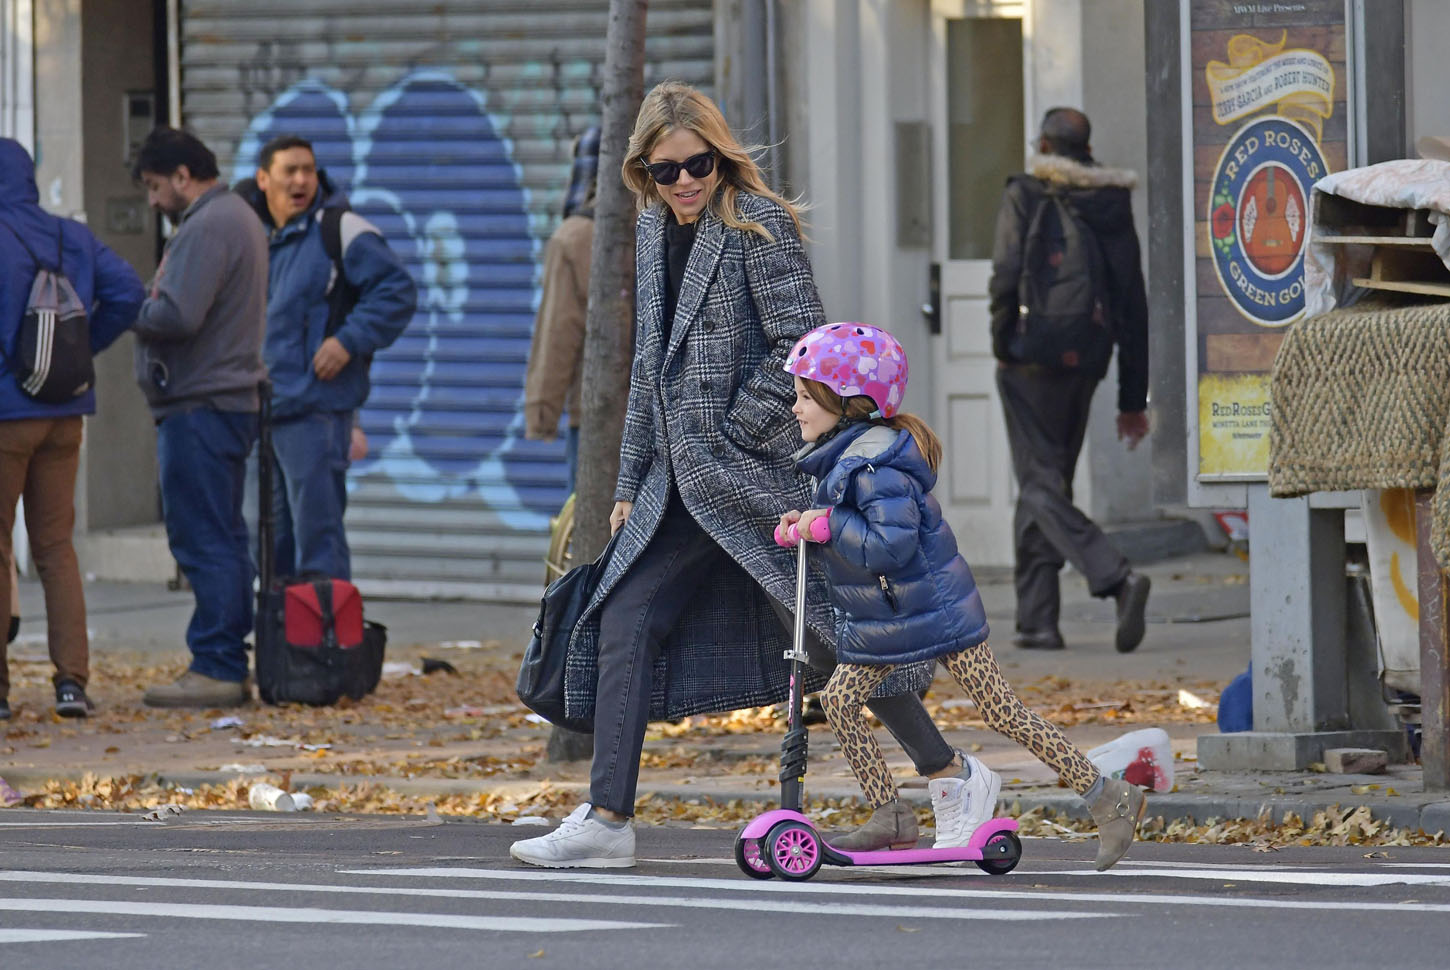 172385, EXCLUSIVE: Sienna Miller walks daughter Marlowe Sturridge to school in the West Village in New York City. New York City, New York - Monday November 27, 2017., Image: 356263146, License: Rights-managed, Restrictions: , Model Release: no, Credit line: Profimedia, Pacific coast news